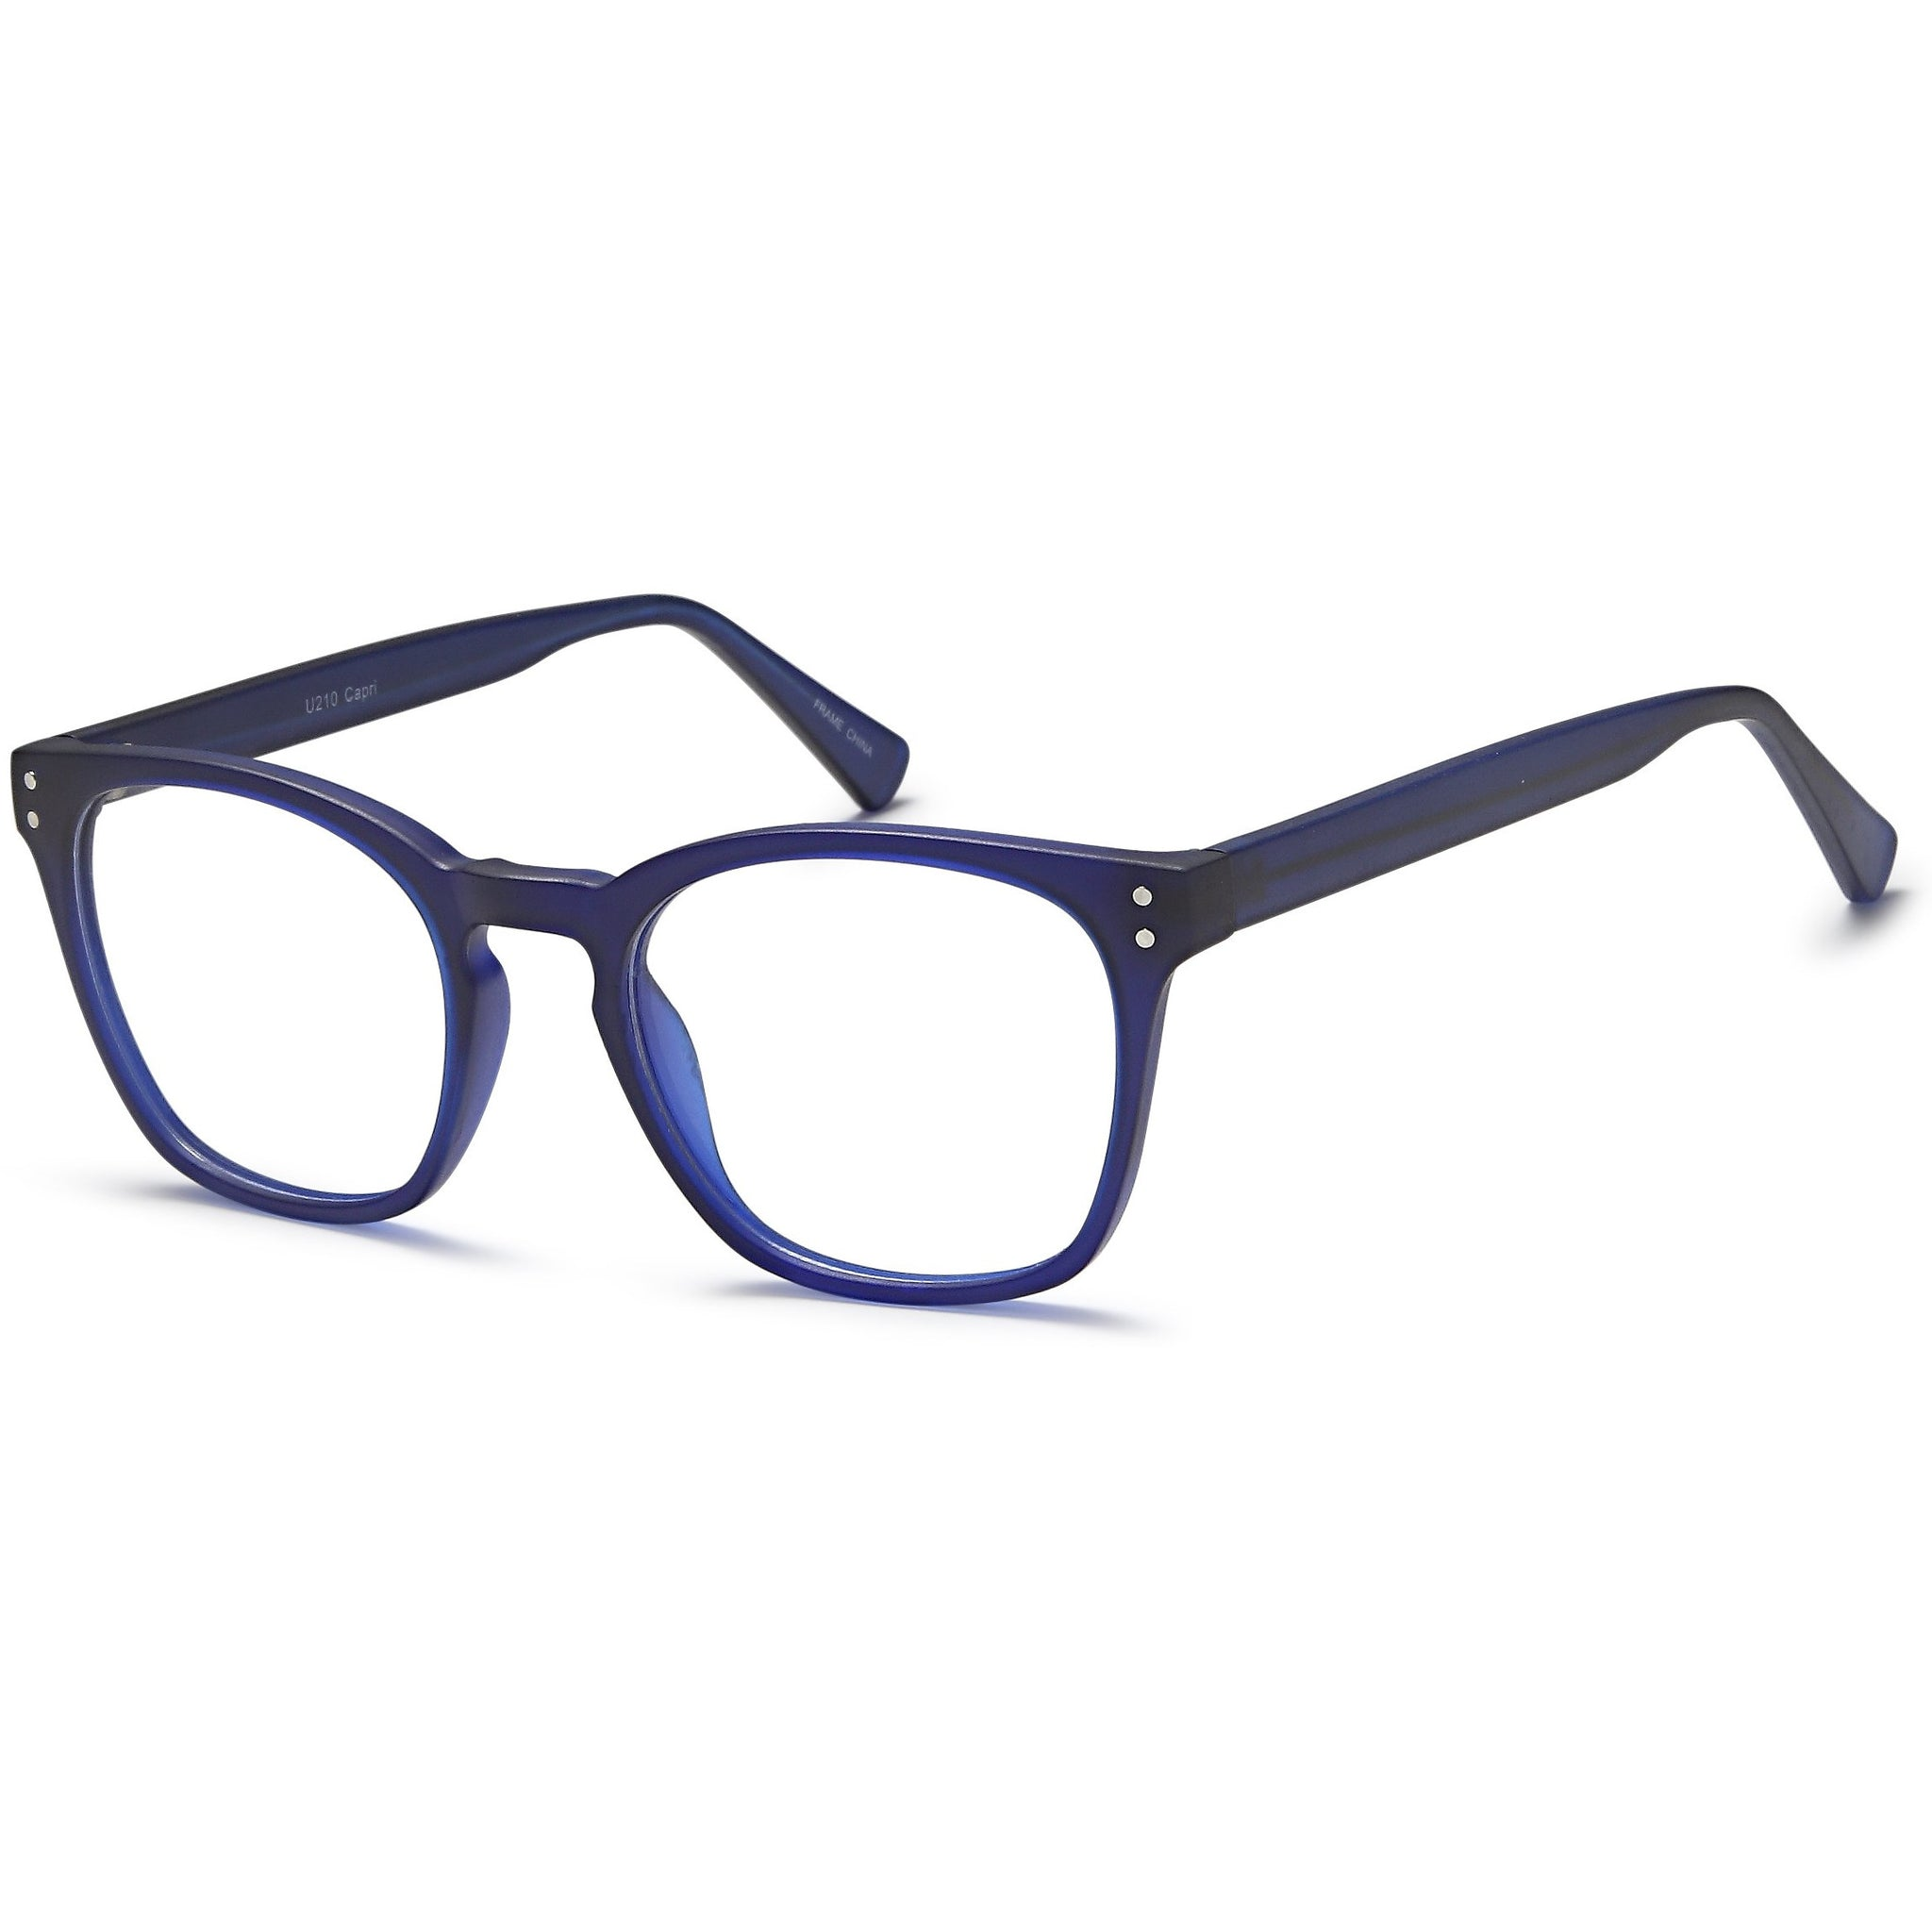 Notting Hill by The Square Mile Prescription Eyeglasses Frame